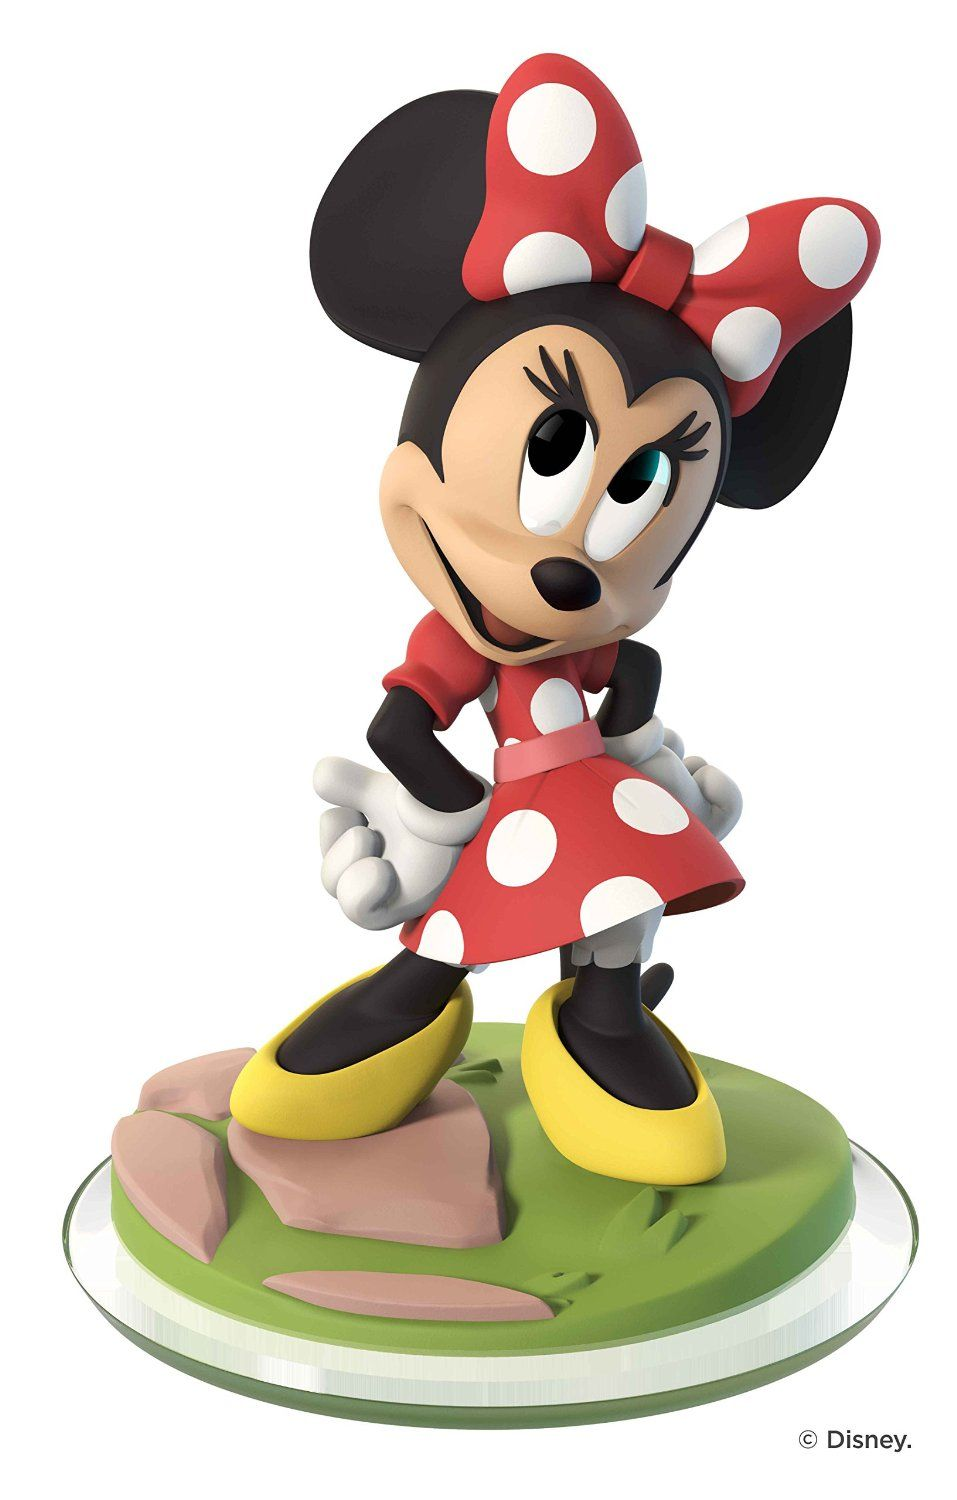 Disney Infinity 3 0 Figure Minnie Mouse Wave 1 Toy Box Only Sold Separately Disney Infinity Characters Disney Infinity Disney Infinity Figures